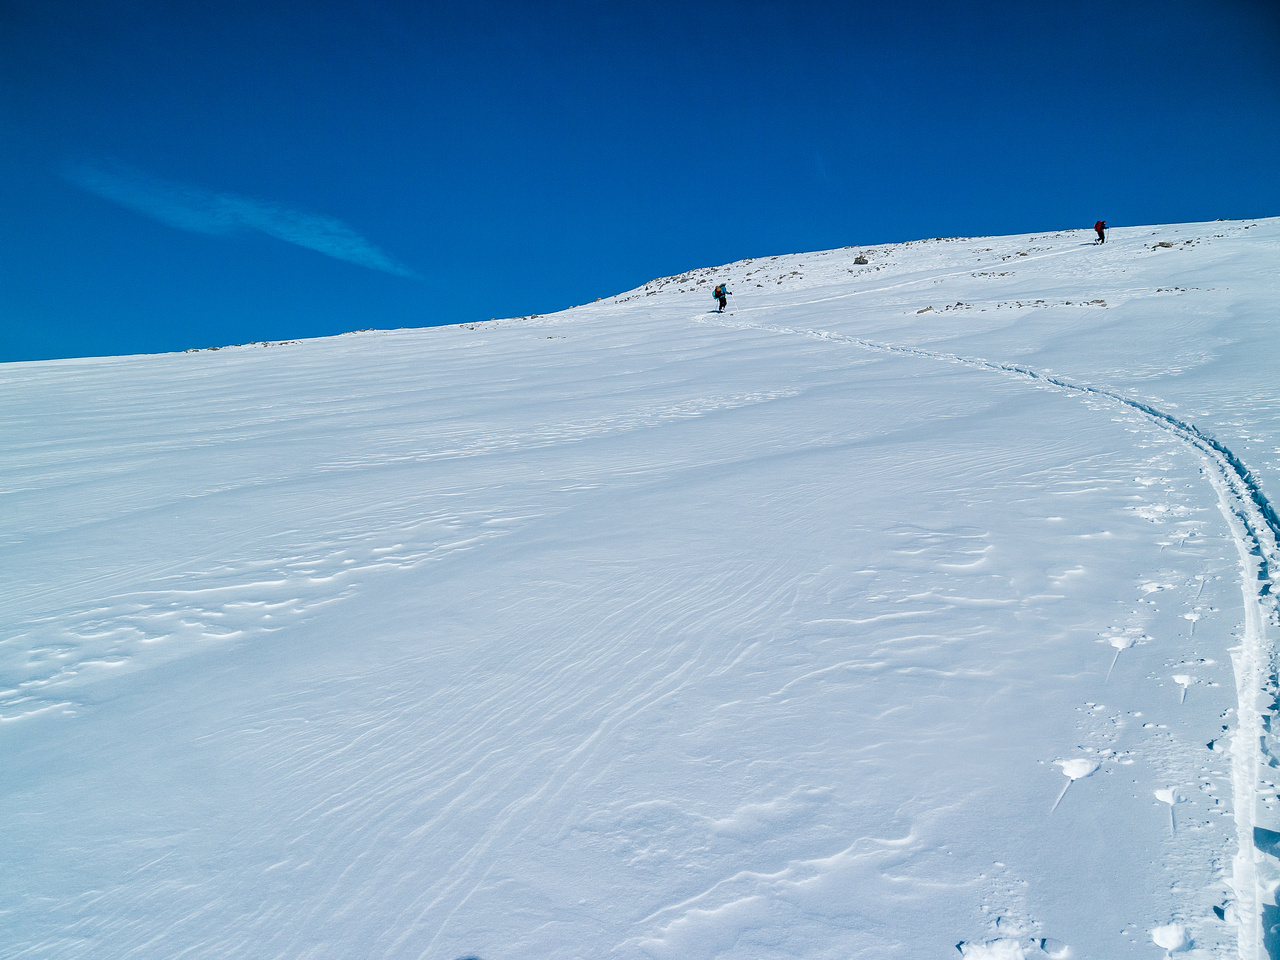 Final few meters of ascent through thin snow.